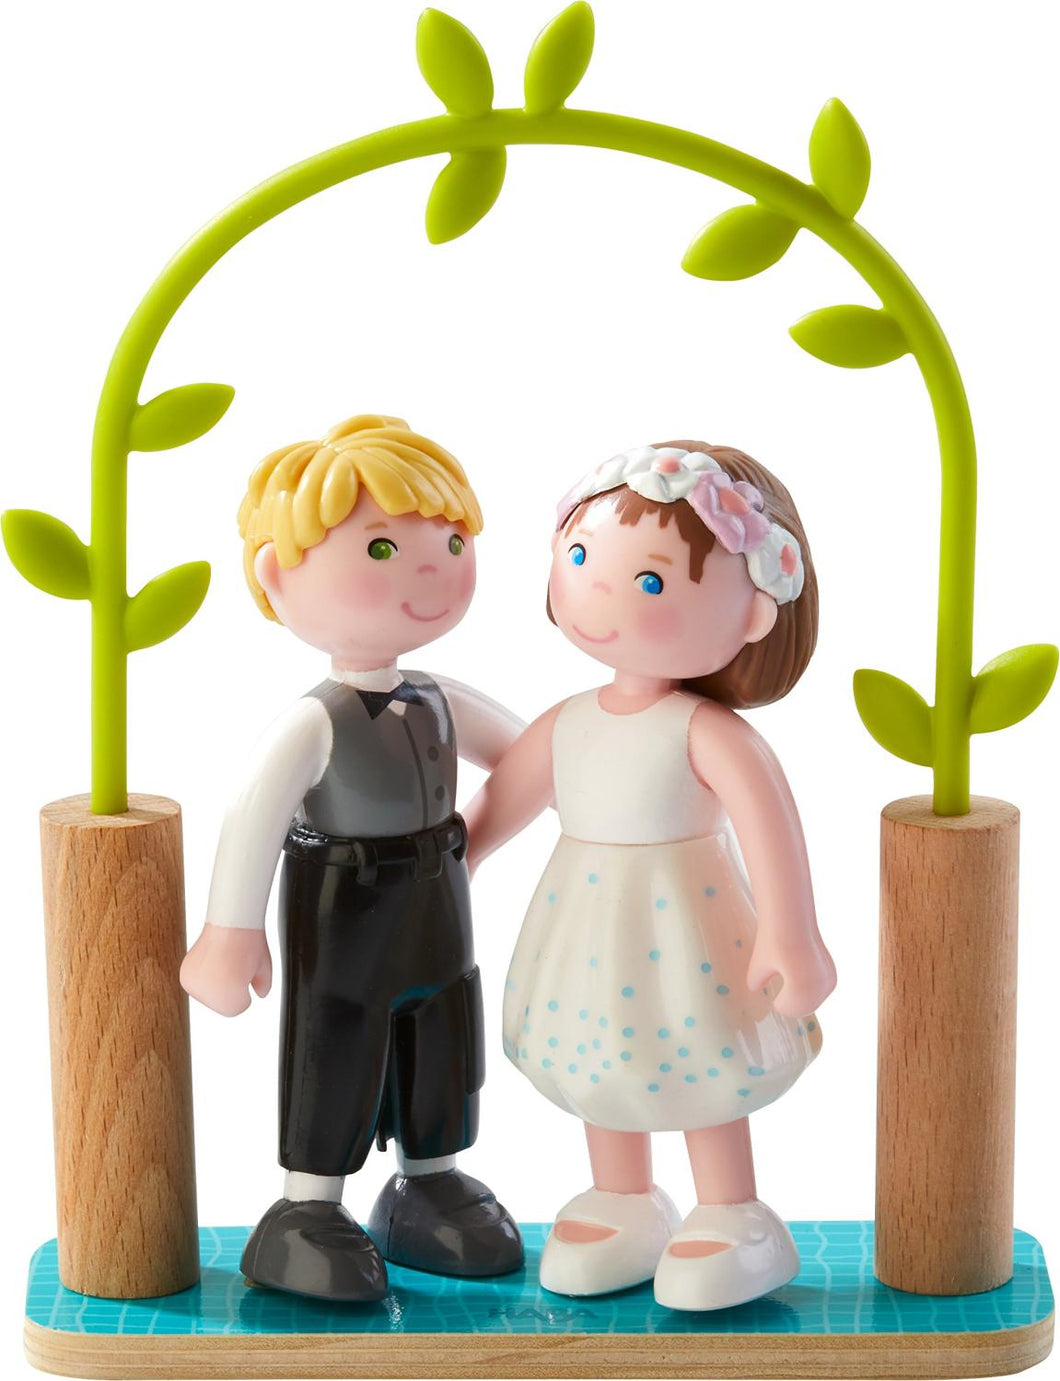 Little Friends: Bride and Groom